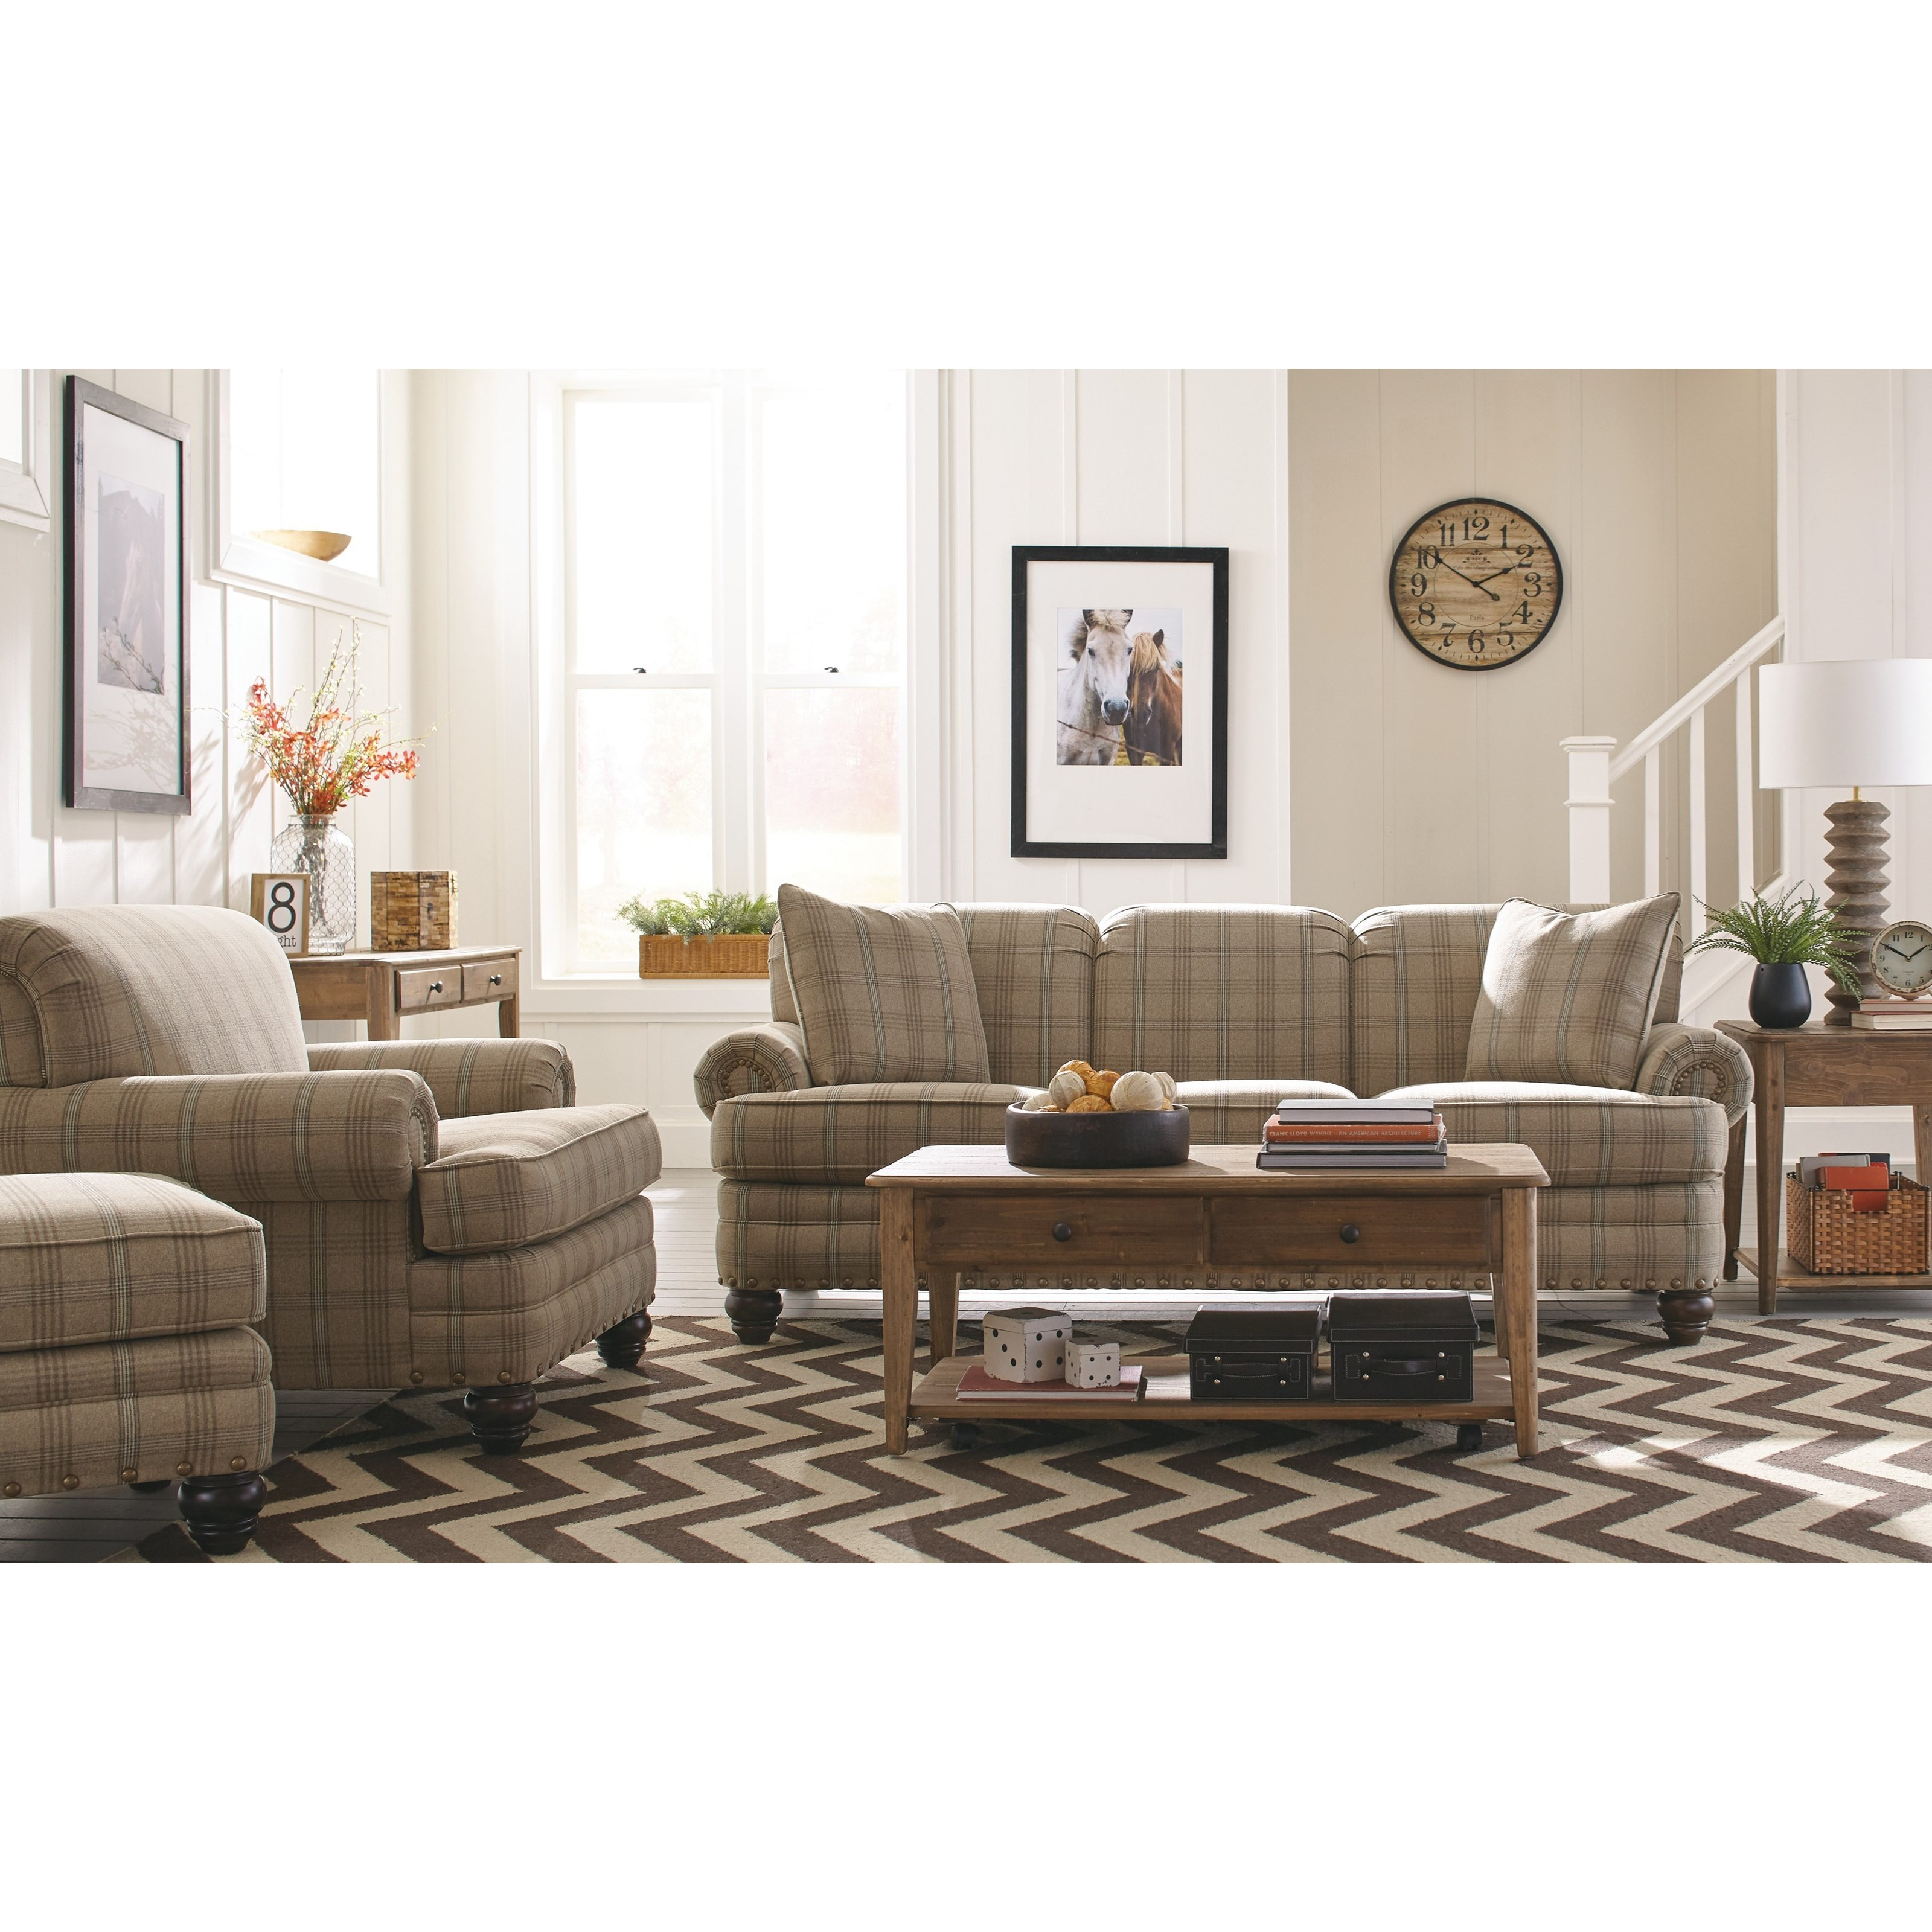 7281 Living Room Group by Craftmaster at Baer's Furniture